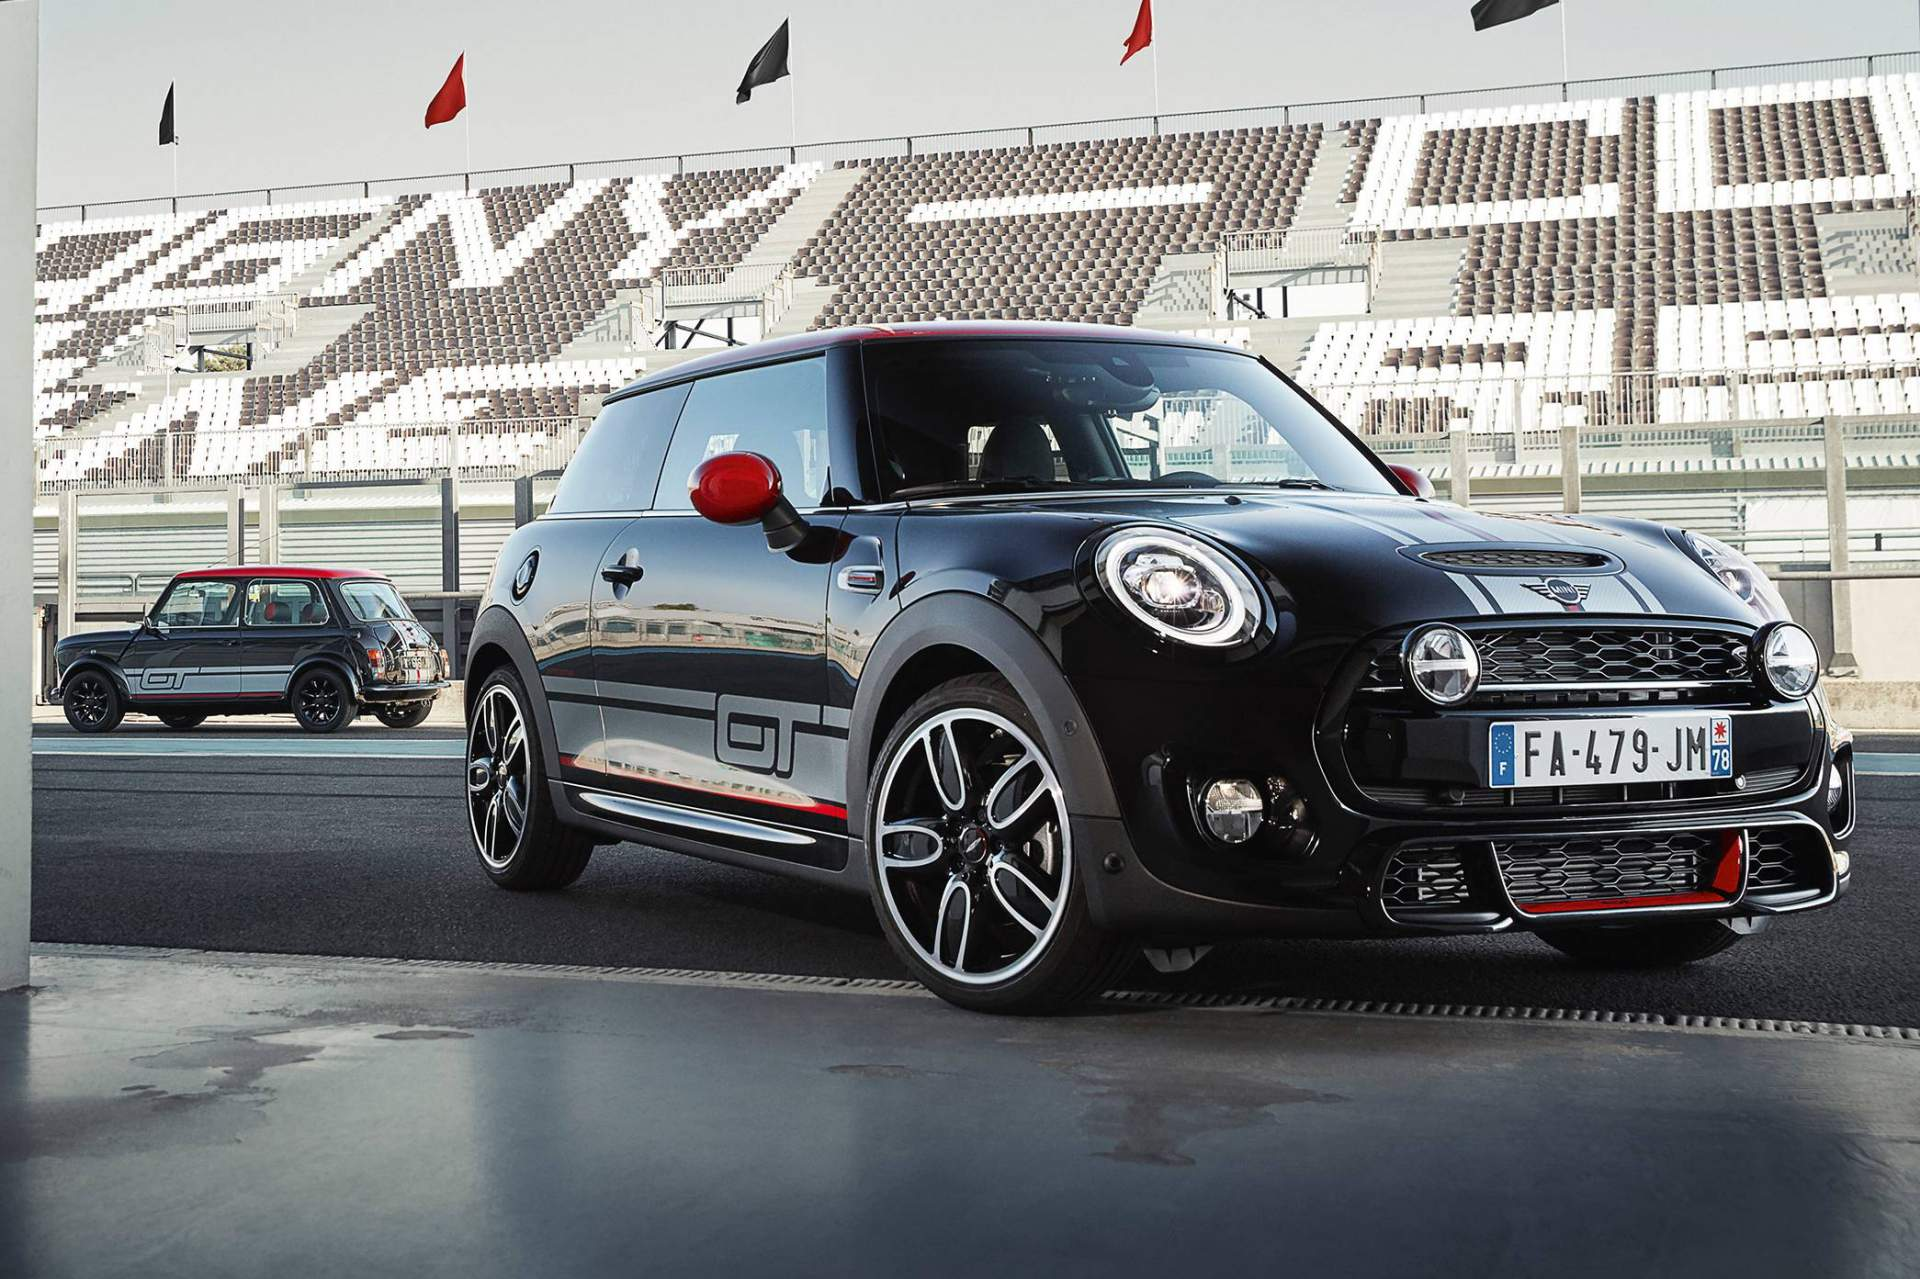 Mini Cooper S Gt Edition Unveiled In France As Limited Run Model